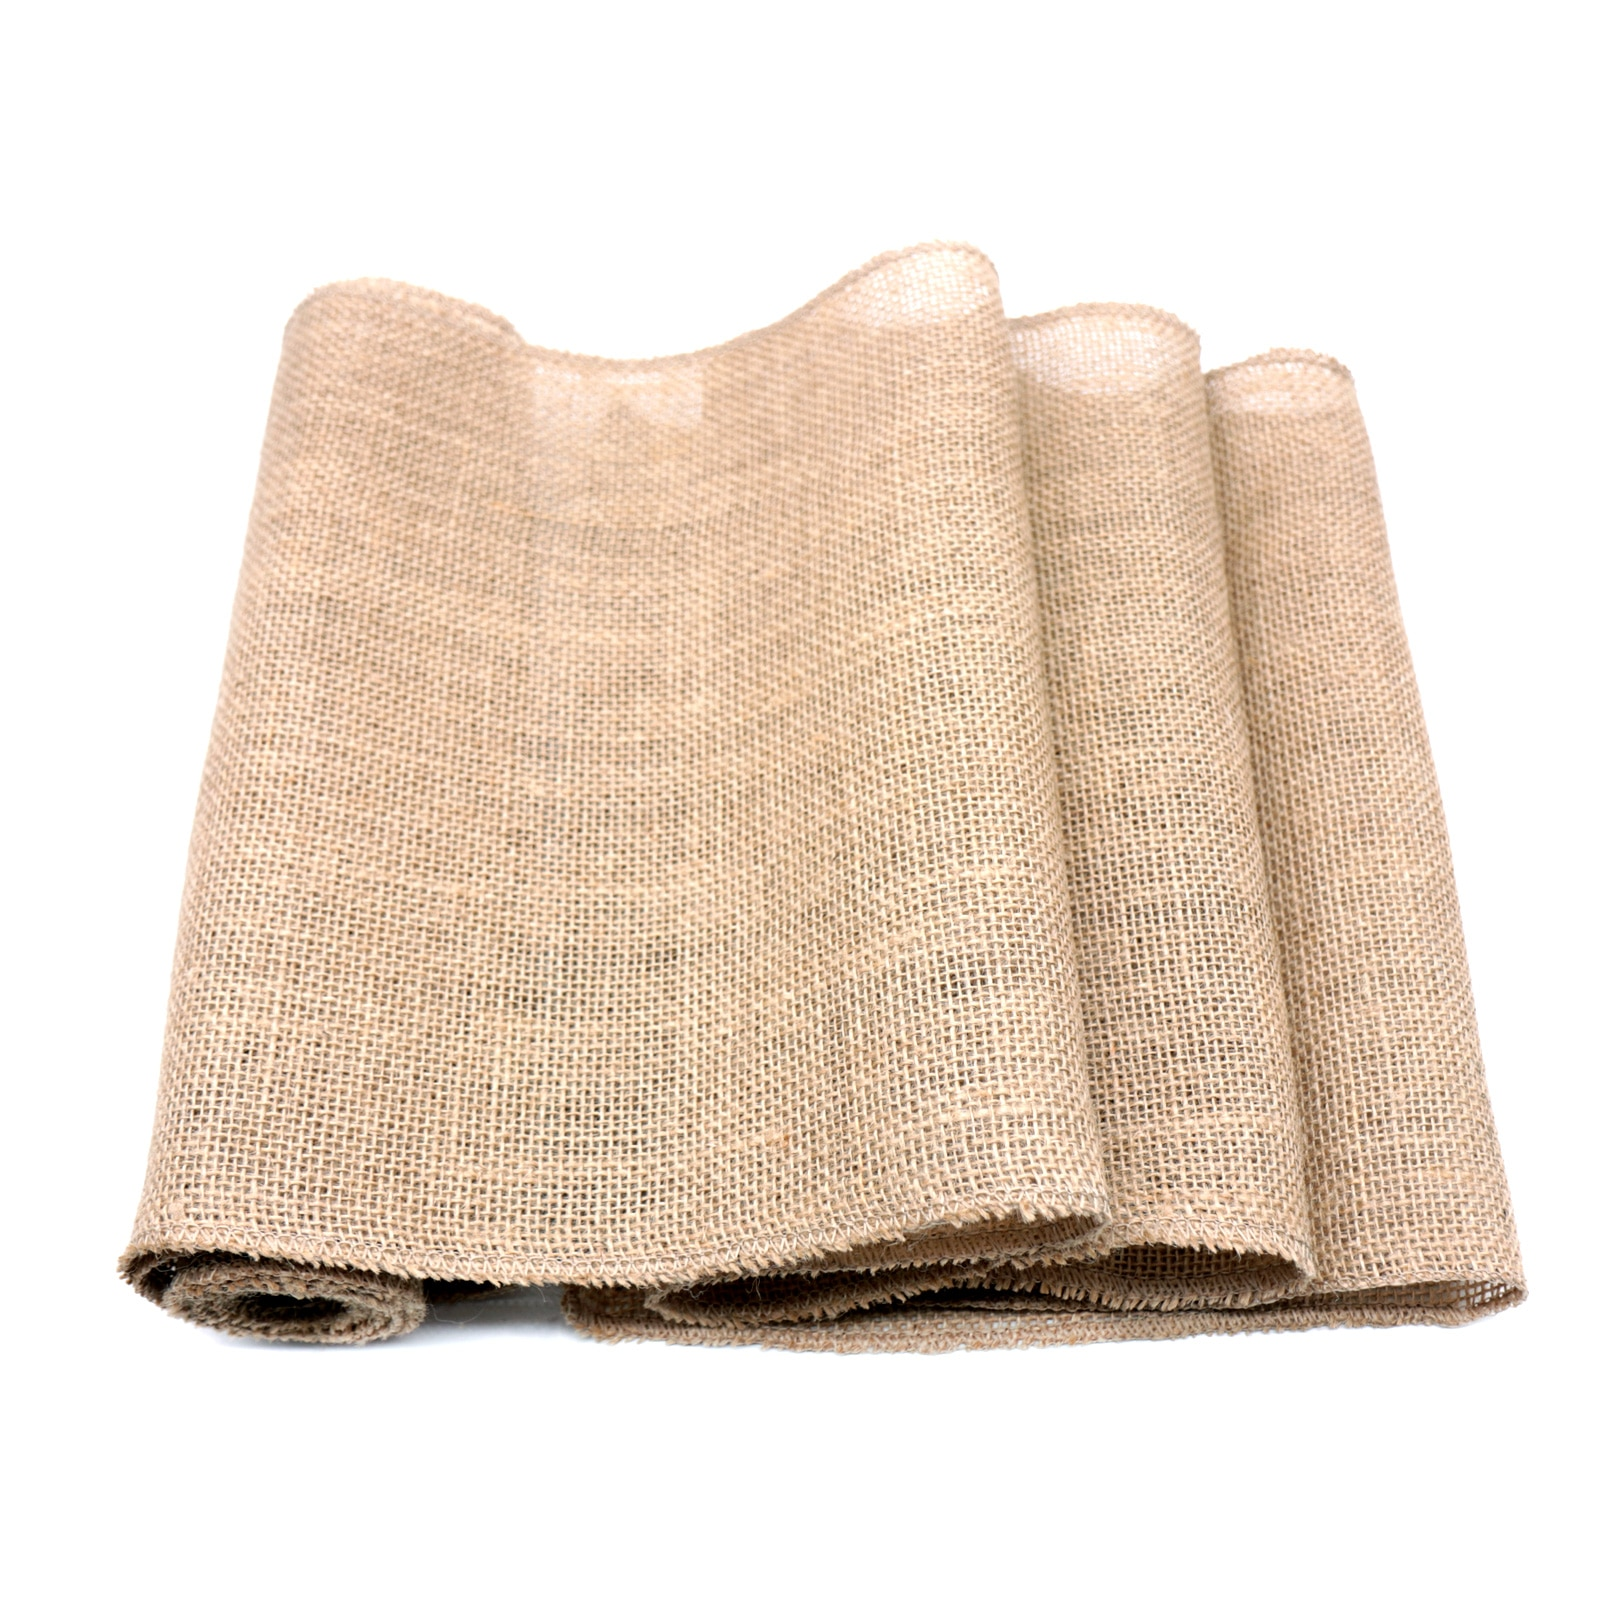 Vintage Burlap Hessian Table Runner Natural Jute Country Wedding Party Decoration home textiles For Christmas Home Table Runners